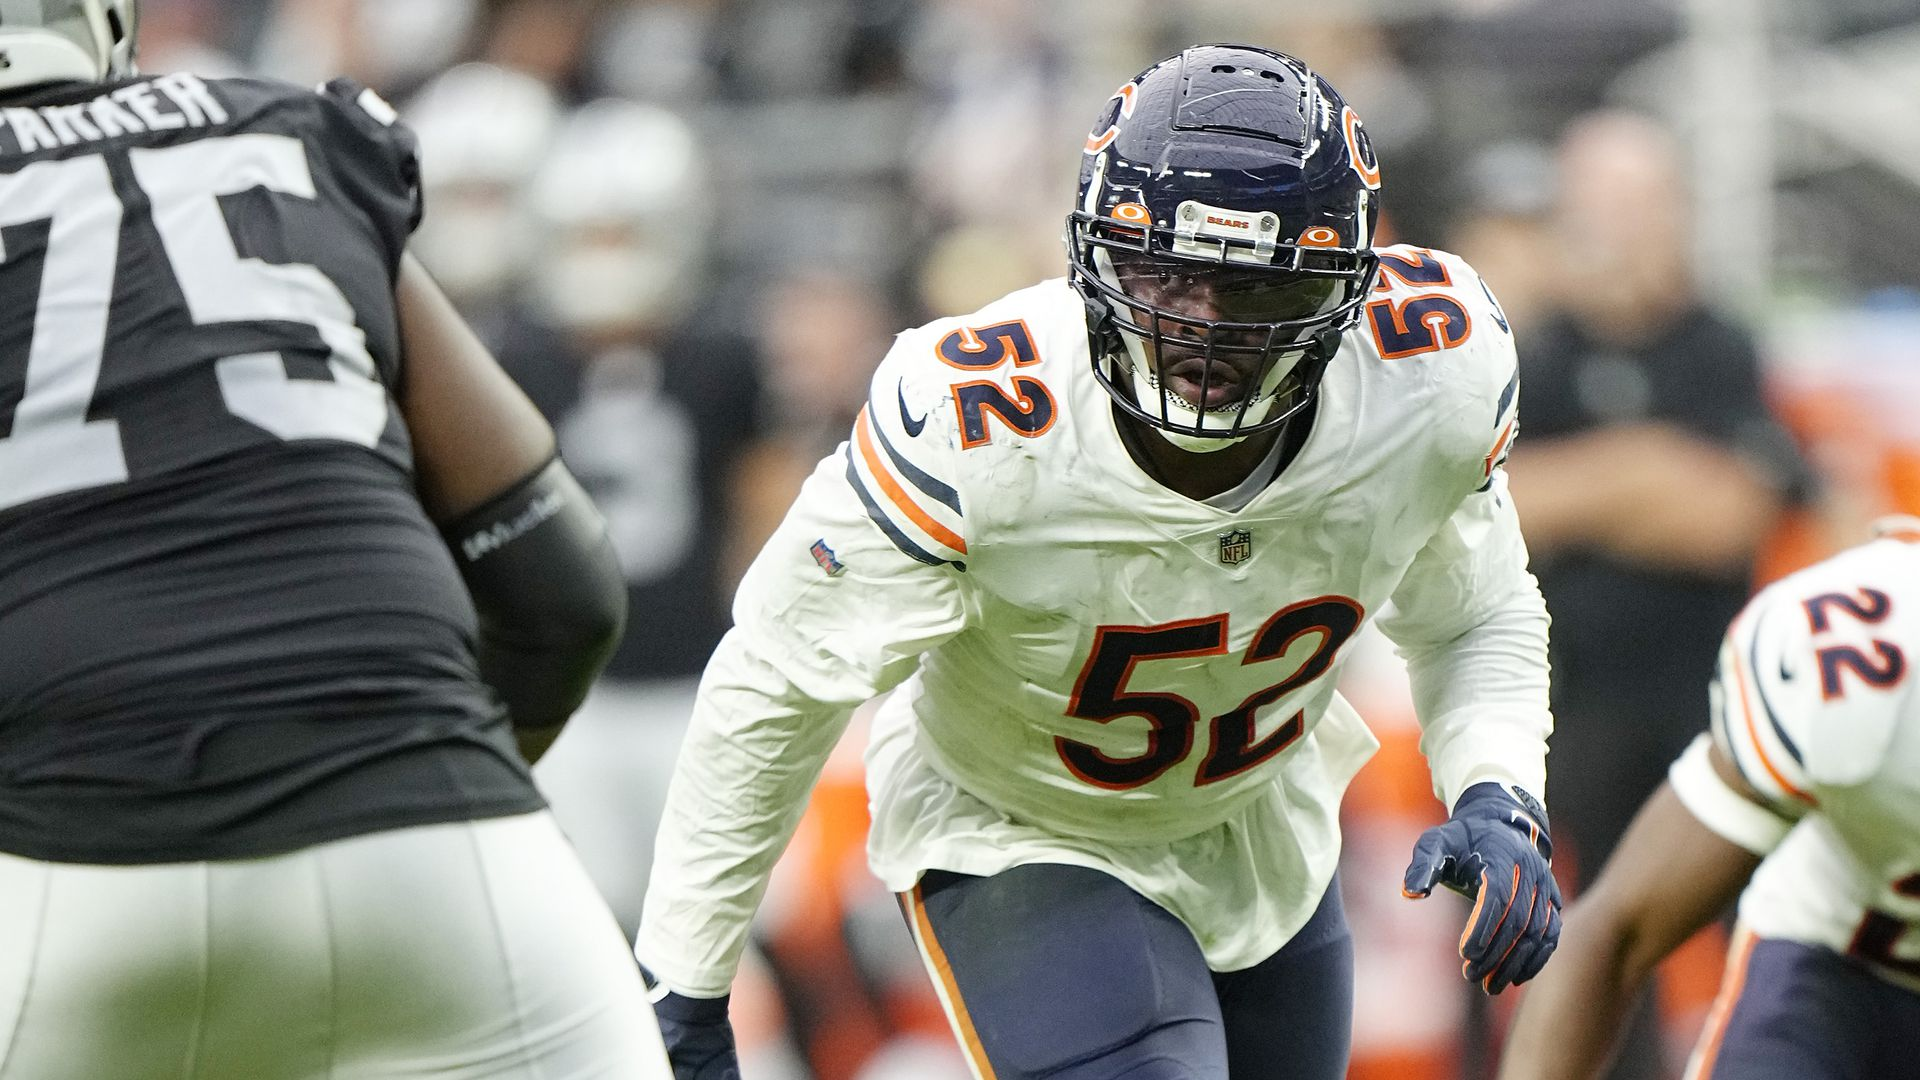 Khalil Mack lines up for a football play.